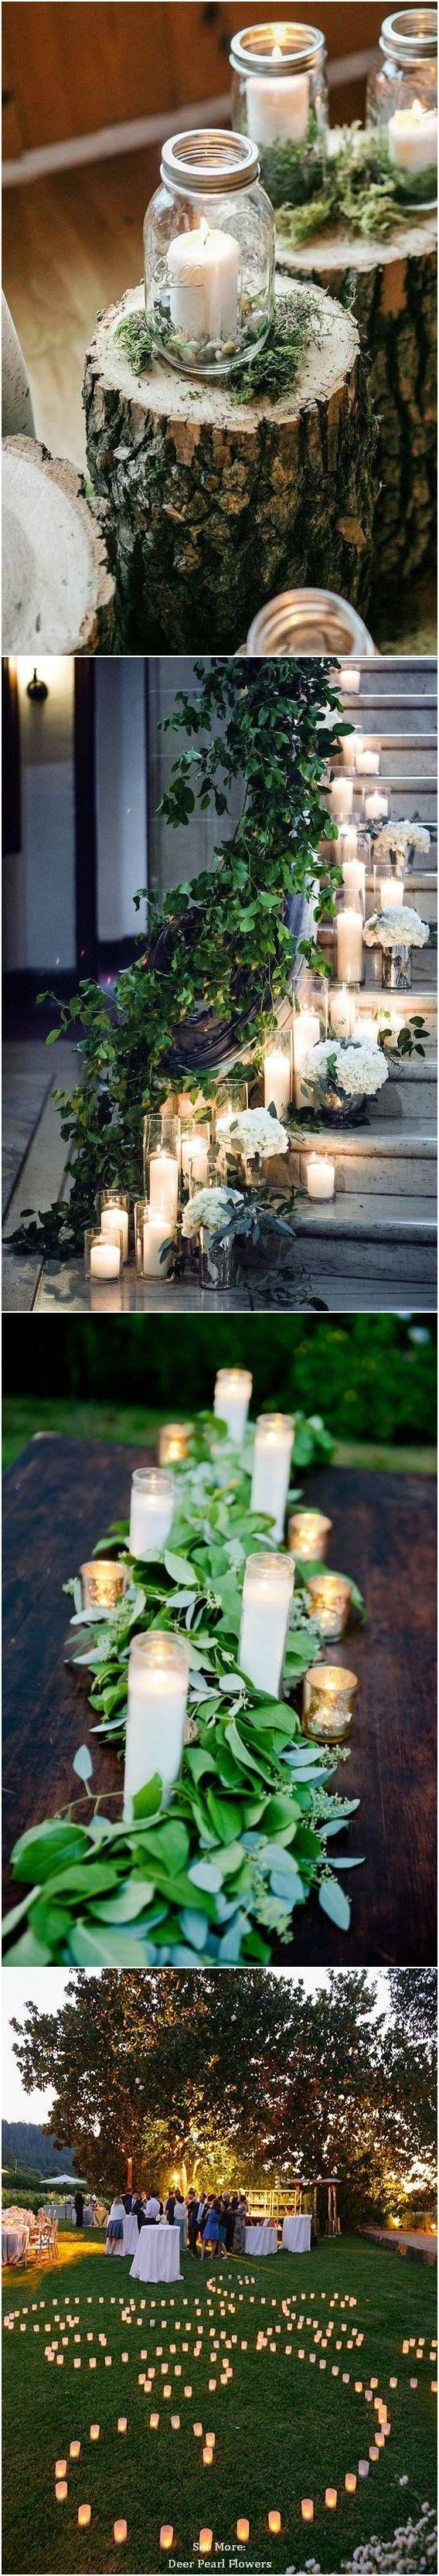 3734 best outdoor weddings images on pinterest marriage dream